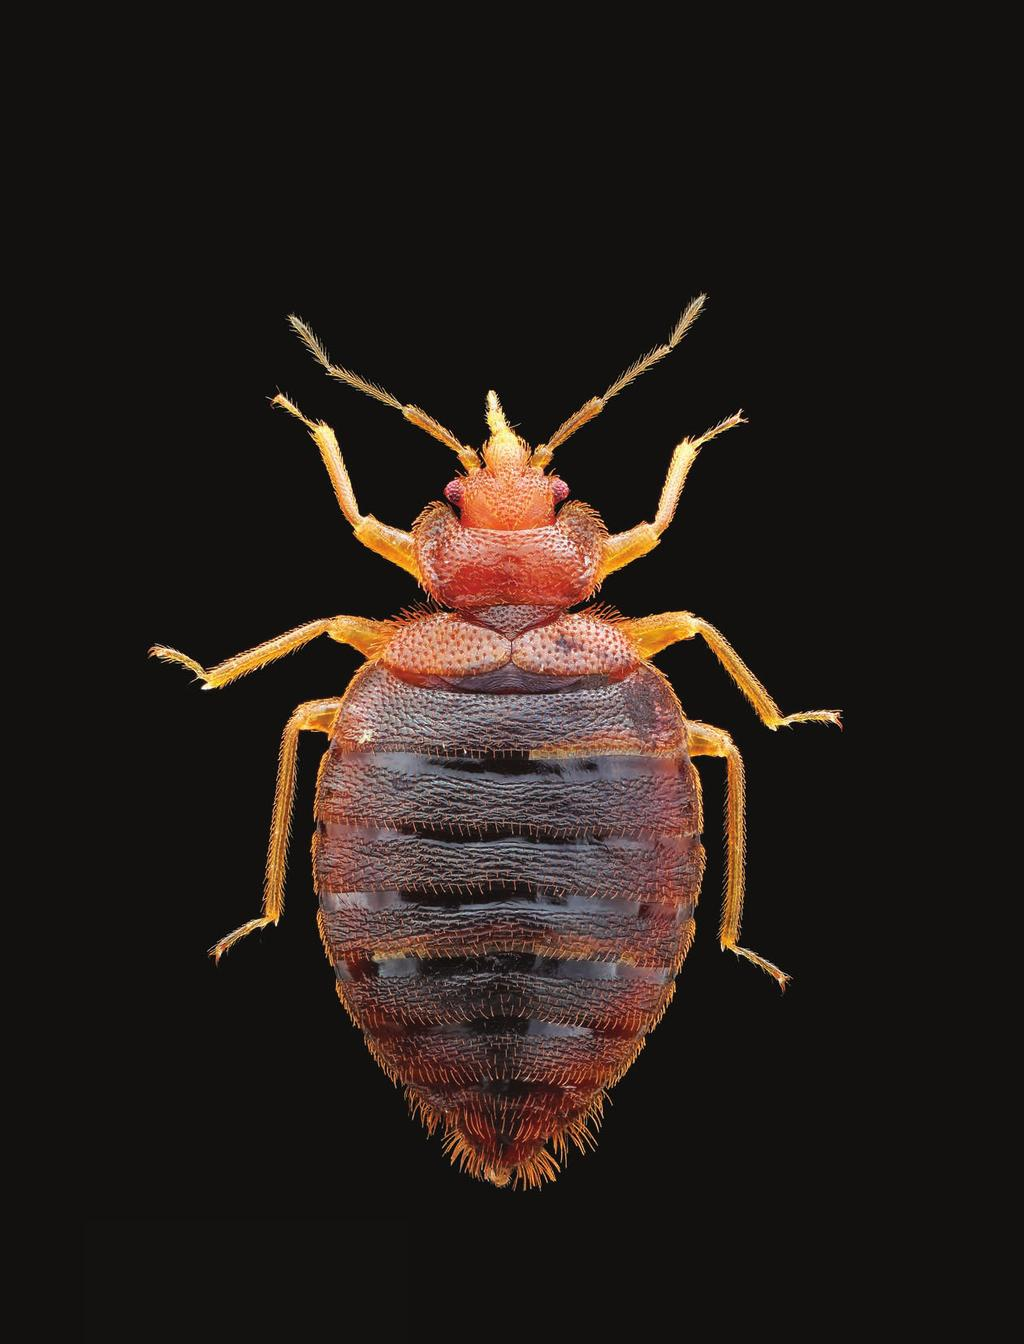 Getting Intimately Acquainted with the Common Bed Bug With the resurgence of bed bugs, people around the world are getting more familiar with the creatures than they d like.